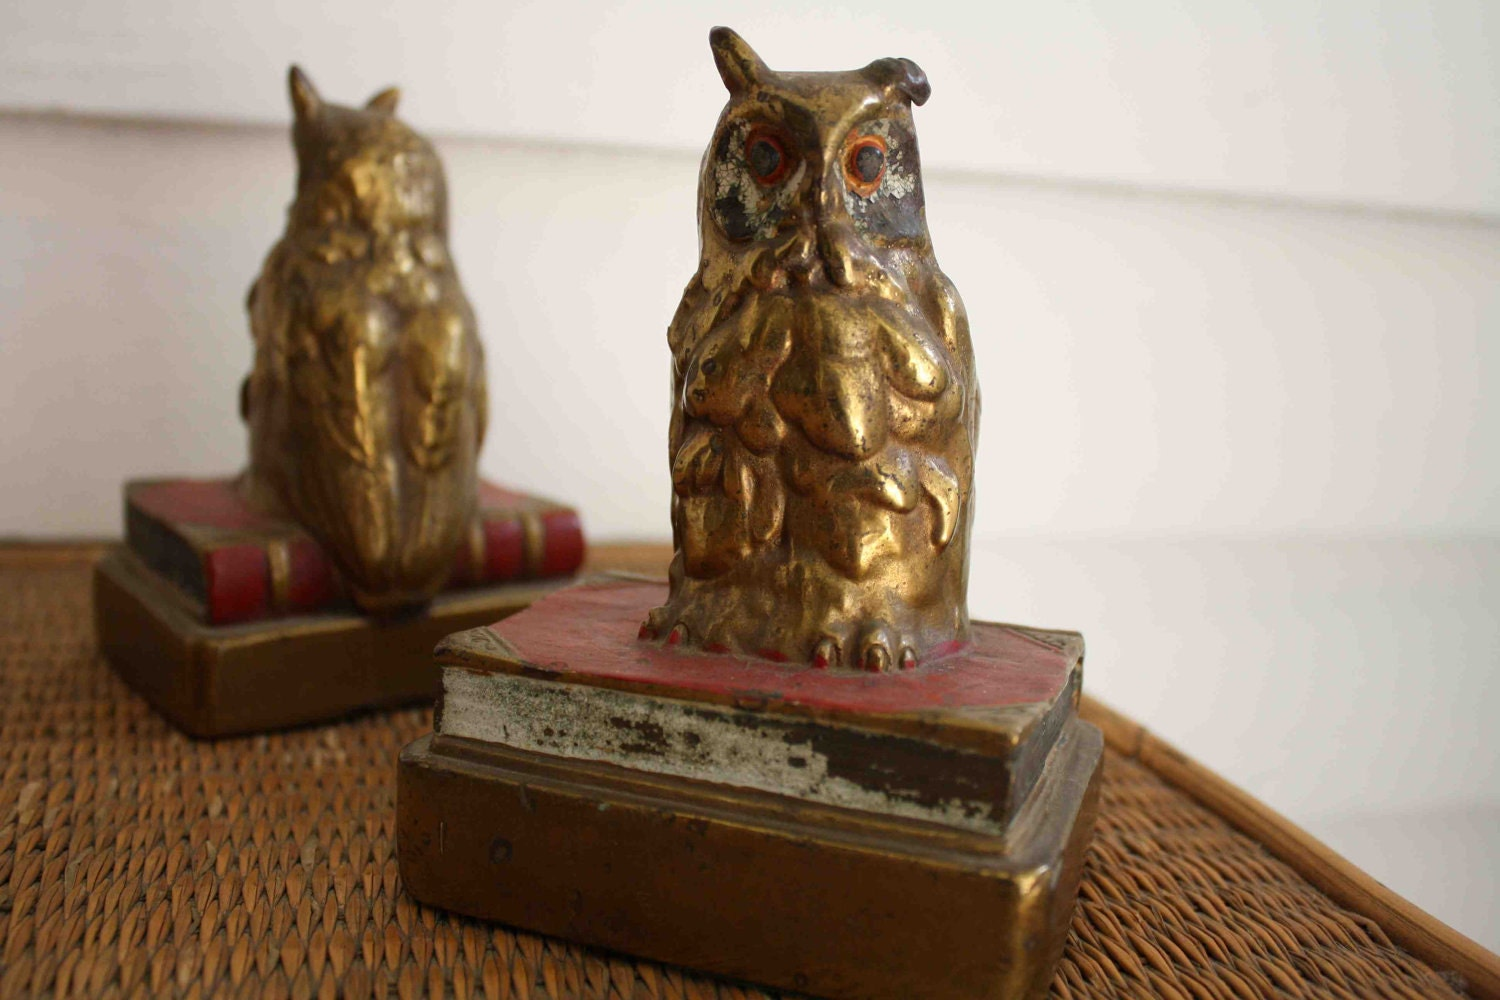 Sale vintage owl bookends armor bronze by silverbeevintage on etsy - Armor bronze bookends ...